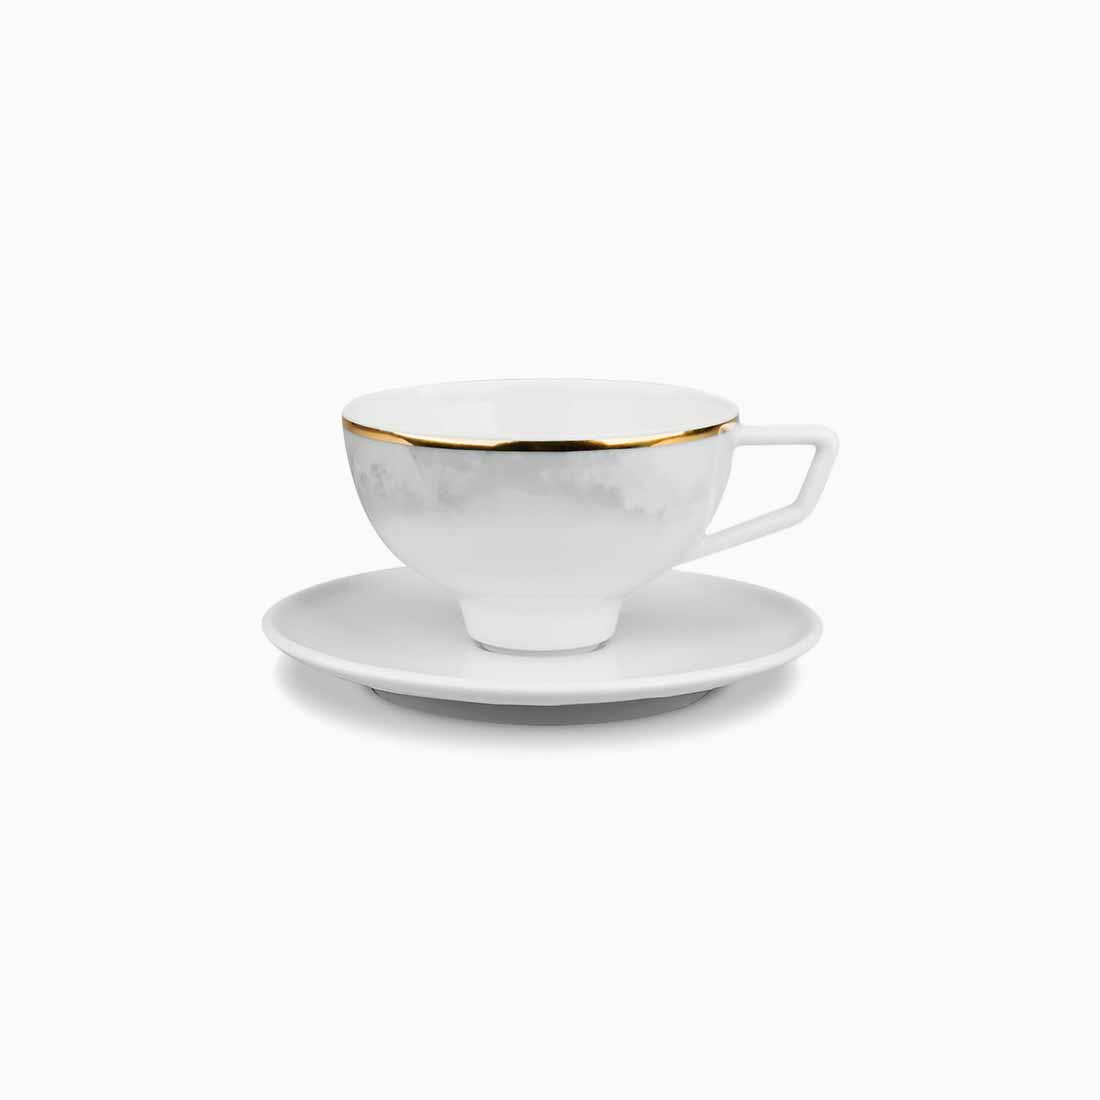 Pomona Espresso Cup and Saucer Grey Tempest with gold line by Bodo Sperlein